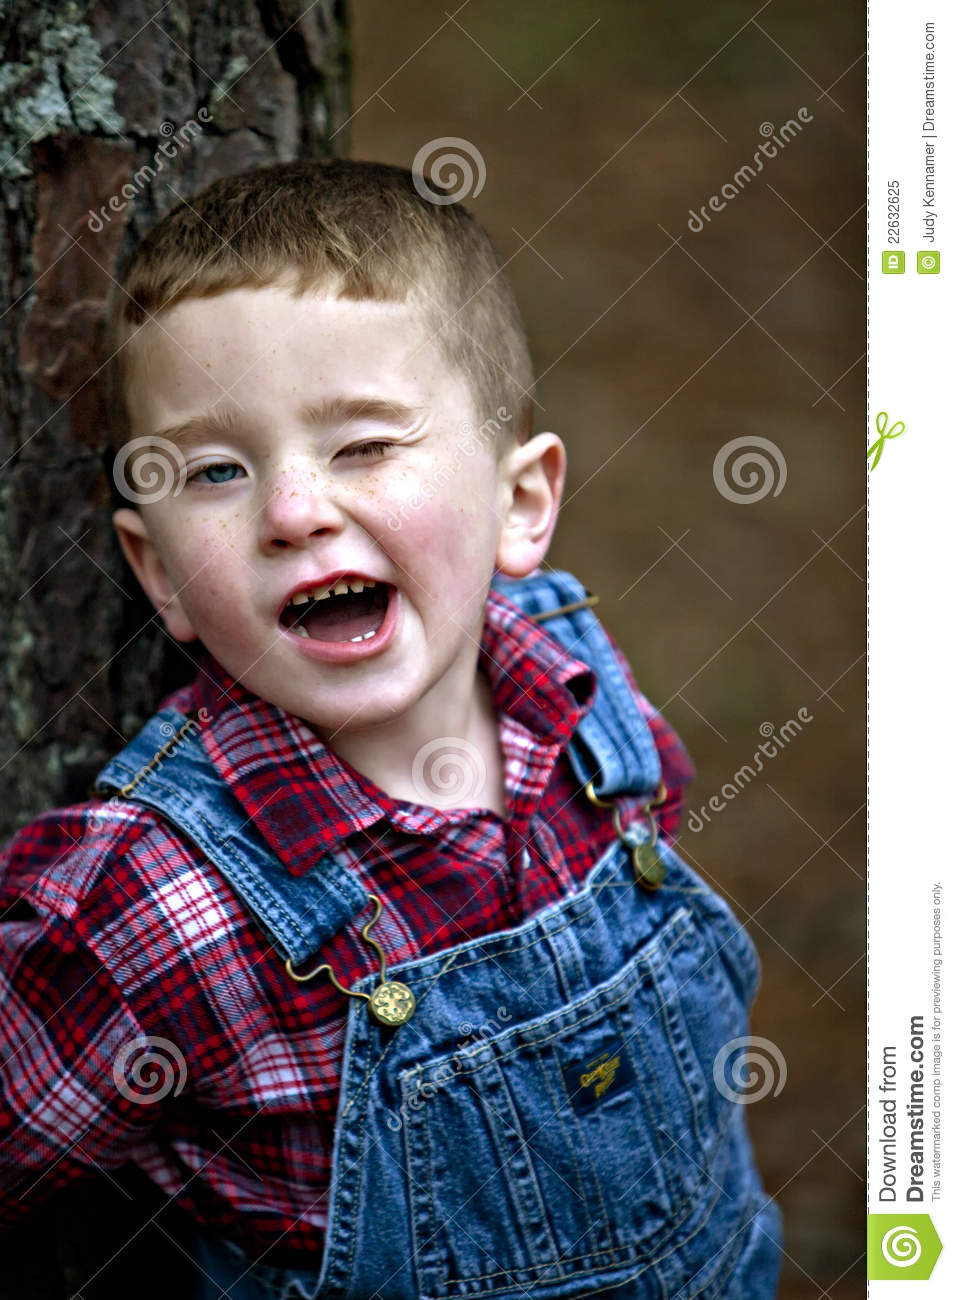 Cute Freckled Redheaded Boy Winking Royalty Free Stock